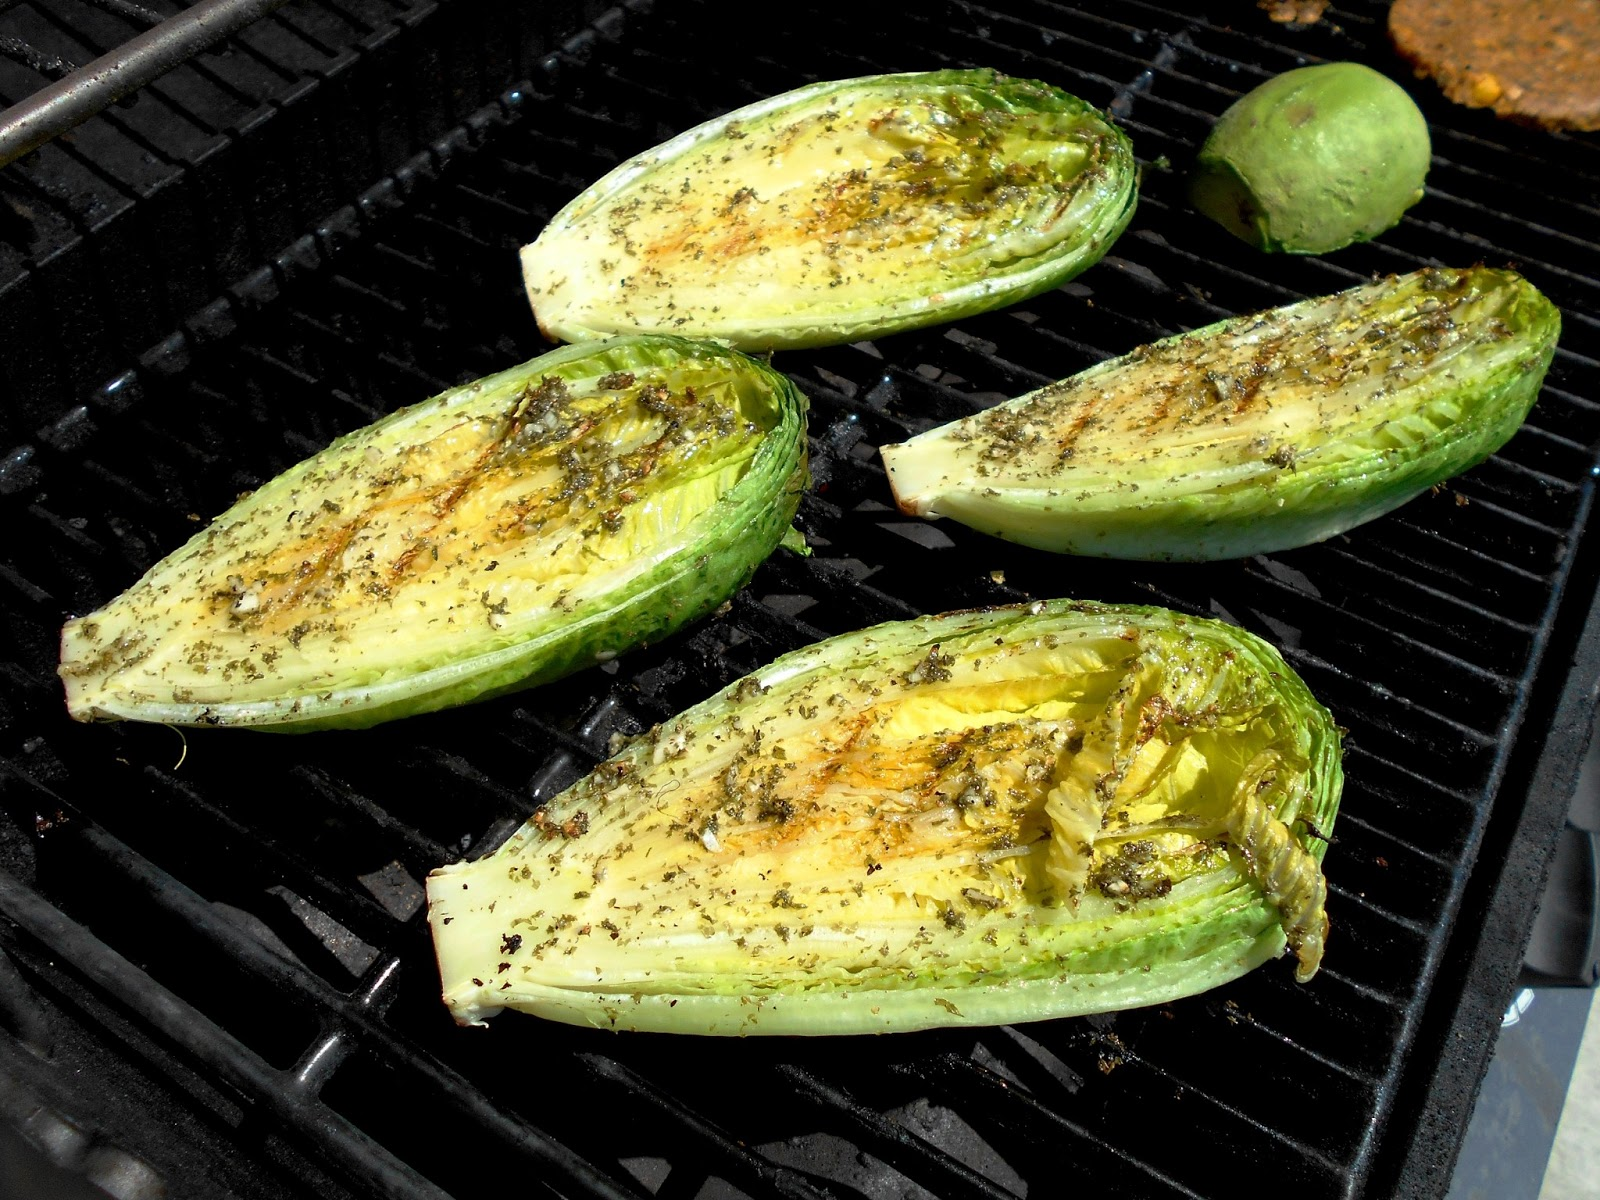 Grilled Romaine Hearts with Roasted Red Pepper Dressing